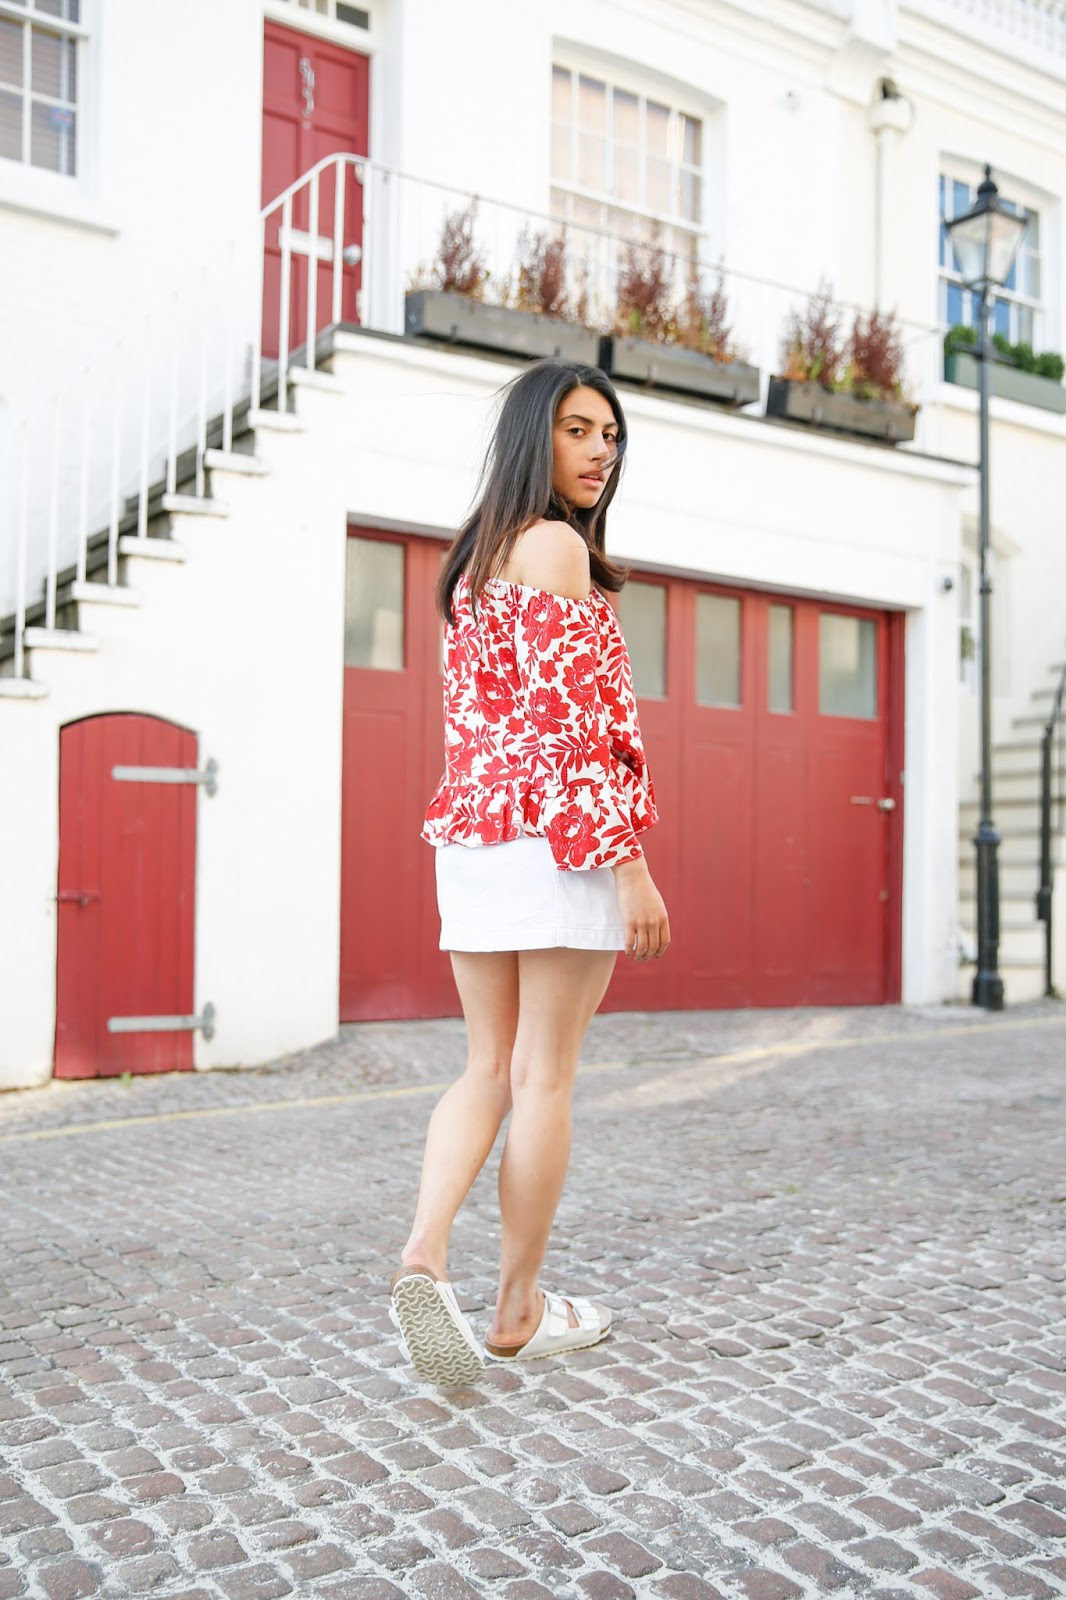 London Fashion Photographer & Blogger, Victoria Metaxas